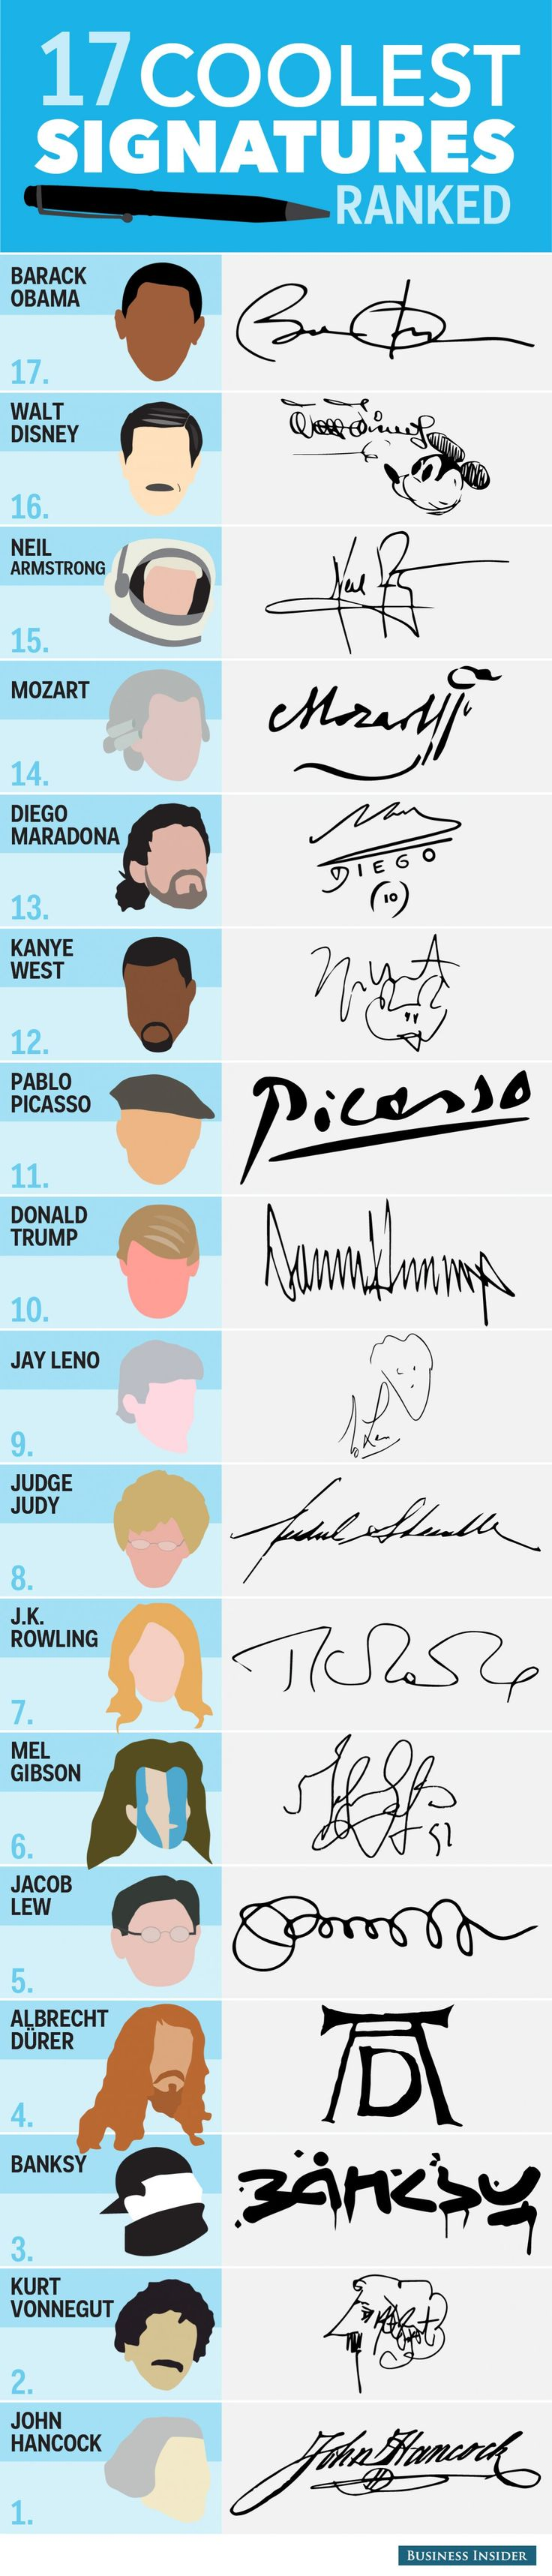 famous best coolest signatures [ranked] ... and number one is .....................................